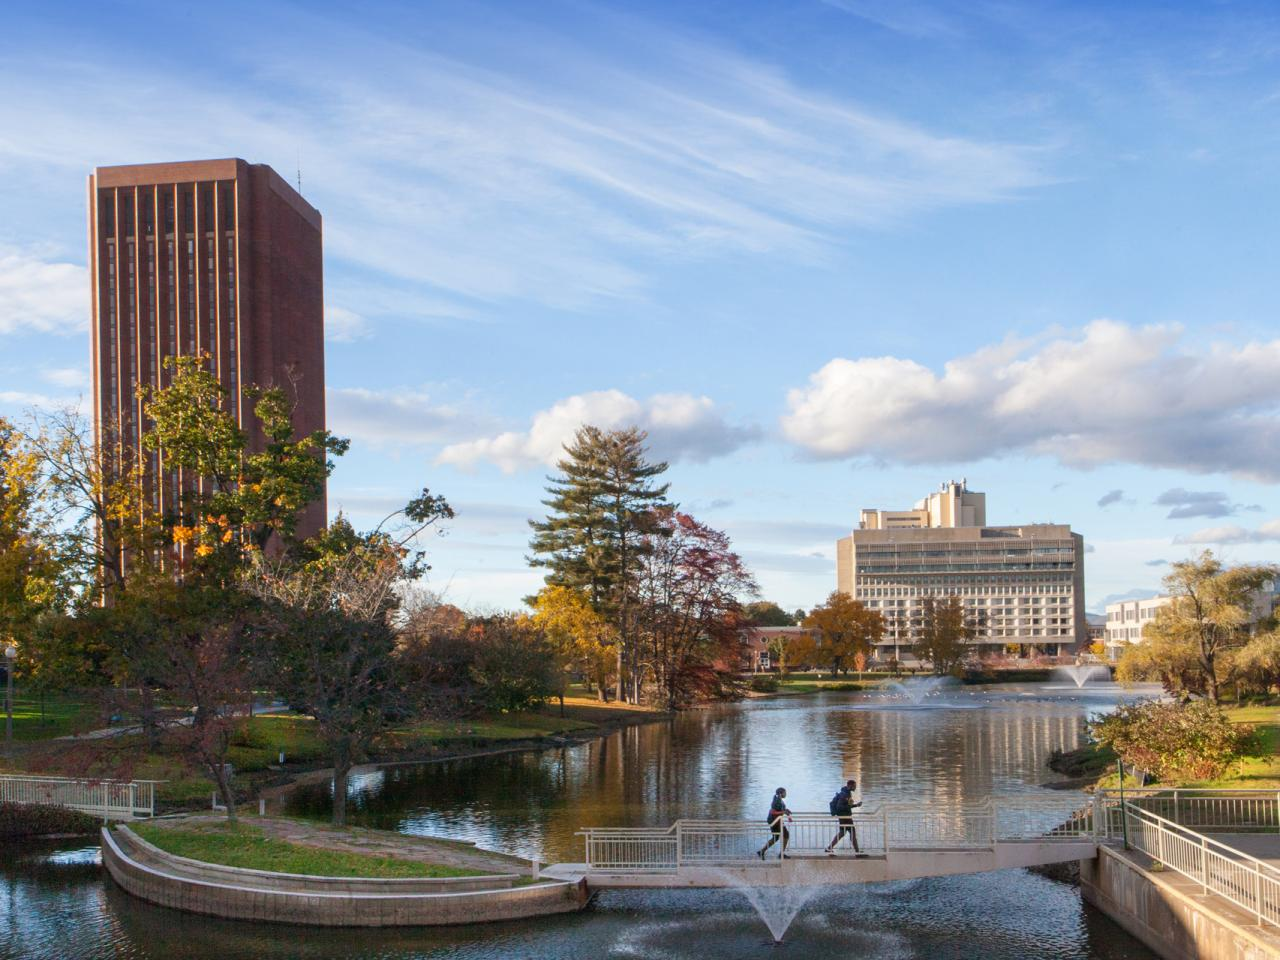 University of Massachusetts in Amherst, Massachusetts